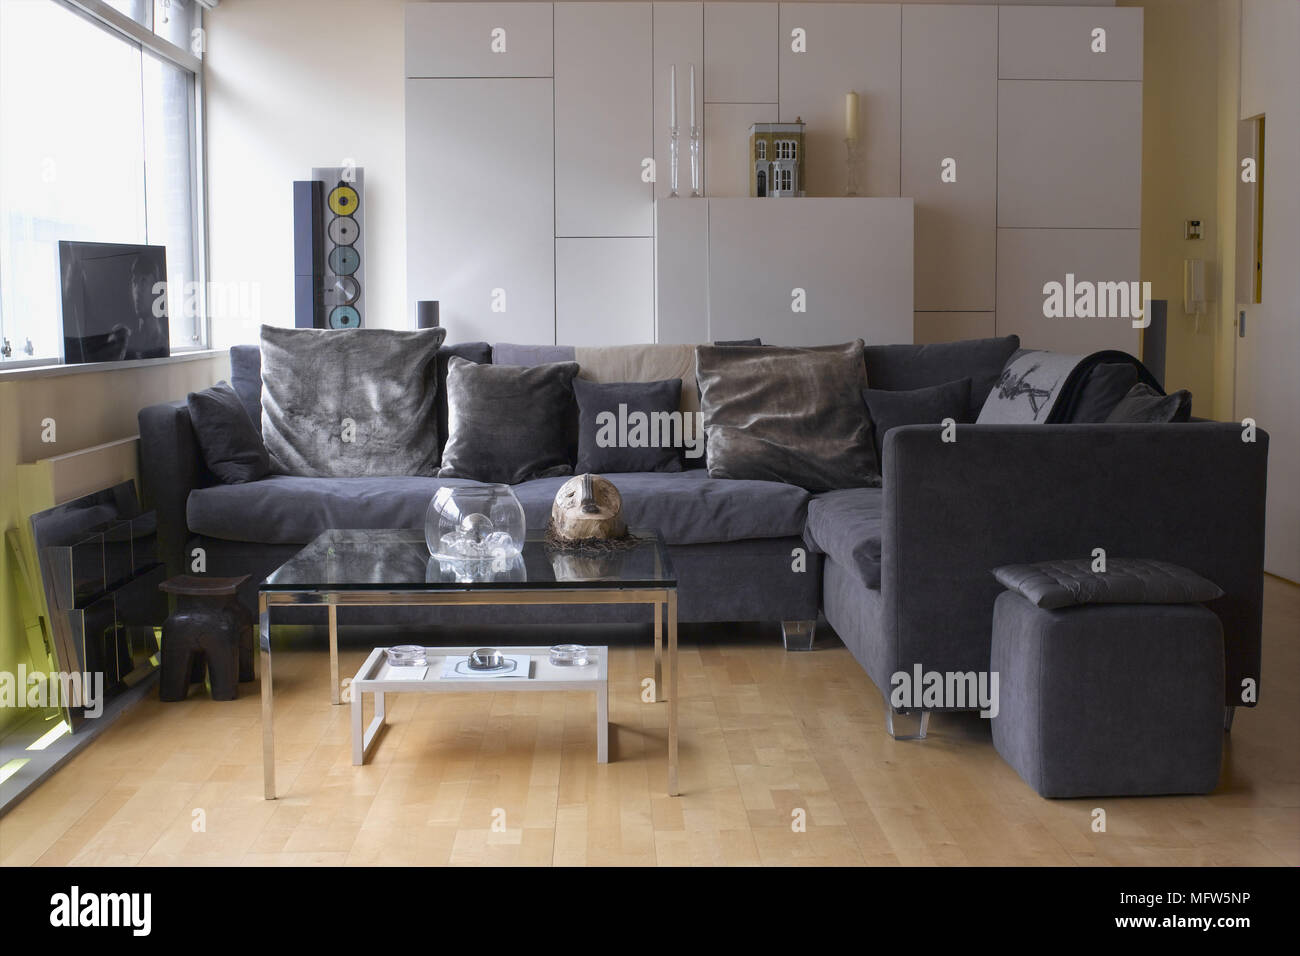 large square corner sofa light grey next a modern sitting room with glass coffee table wooden floor